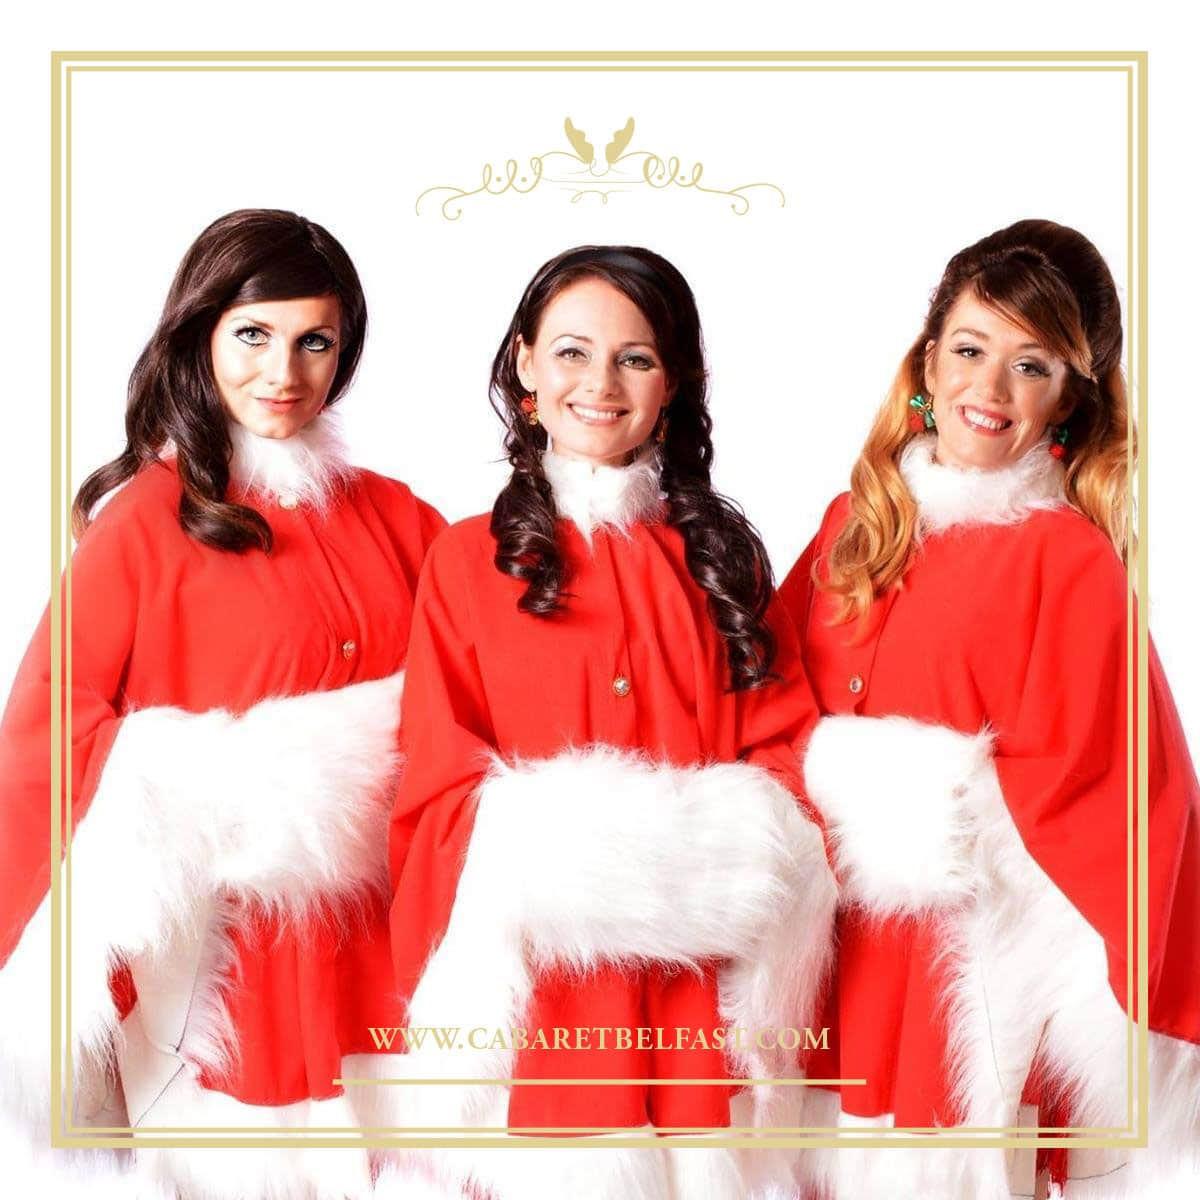 Ronettes Christmas.Christmas With The Iconettes Main Course Meal Show 32 50 Cabaret Supper Club Belfast